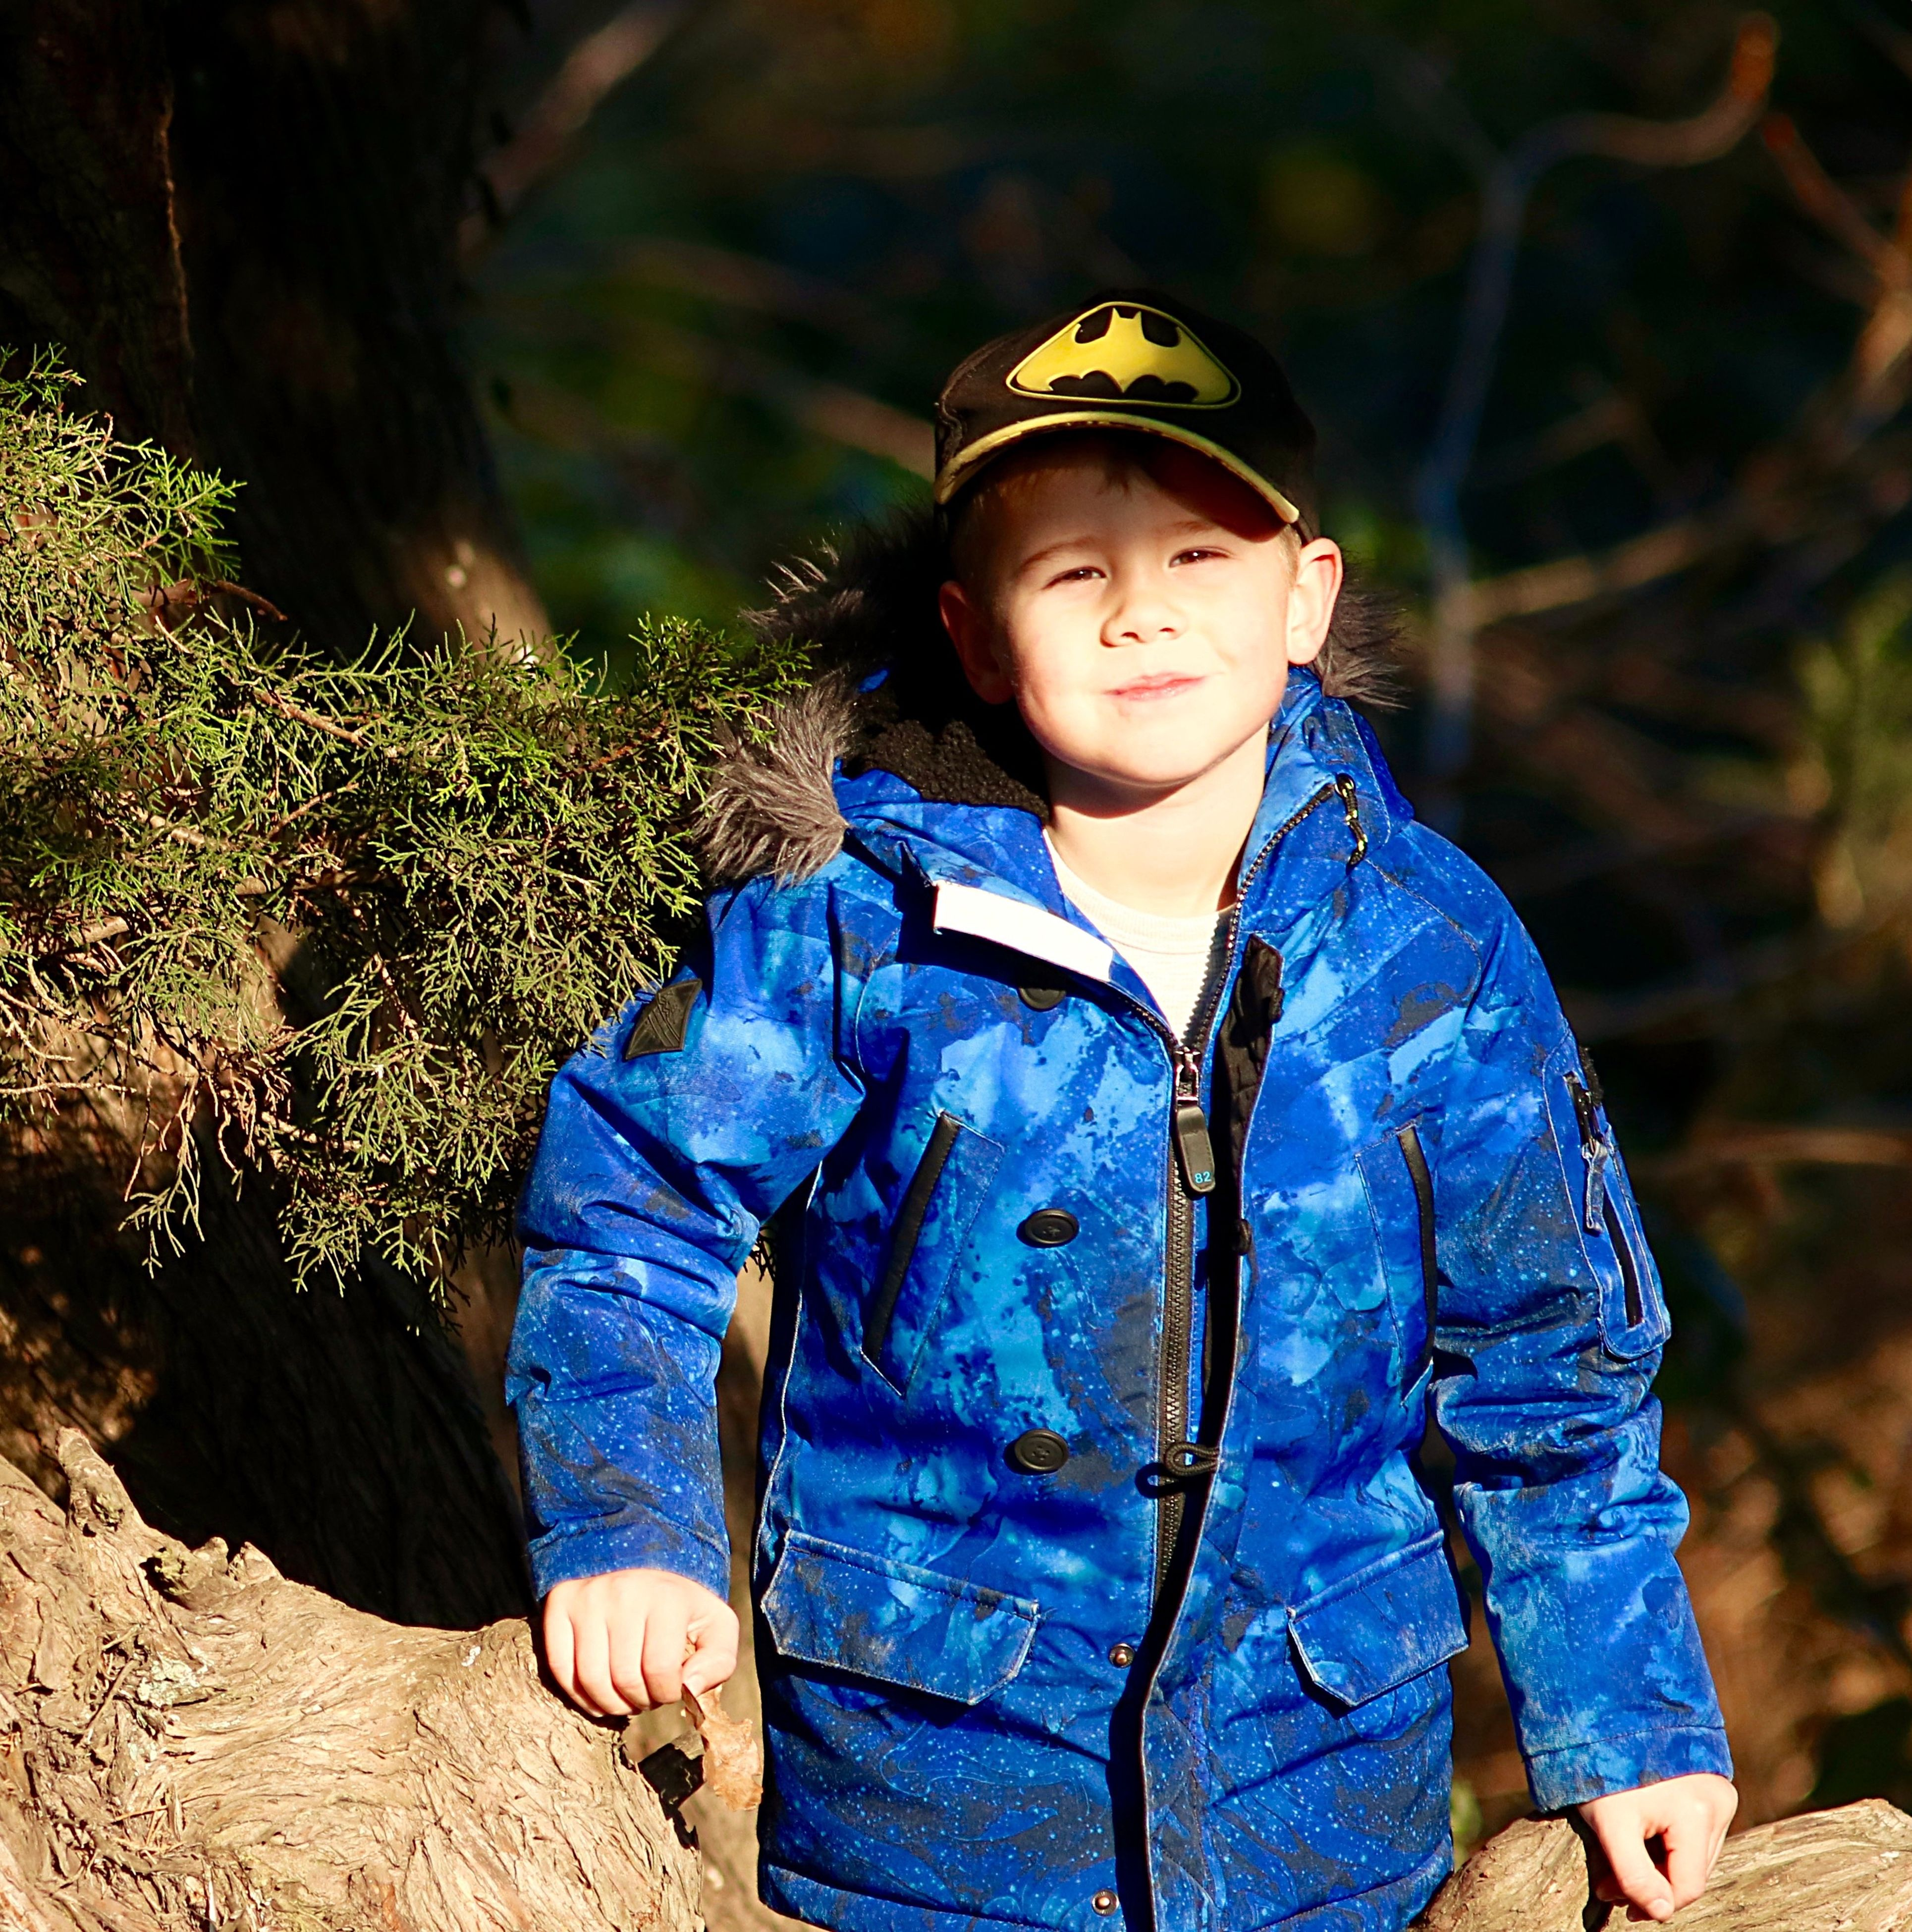 males, child, blue, boys, one person, portrait, one boy only, children only, childhood, people, period costume, outdoors, headwear, day